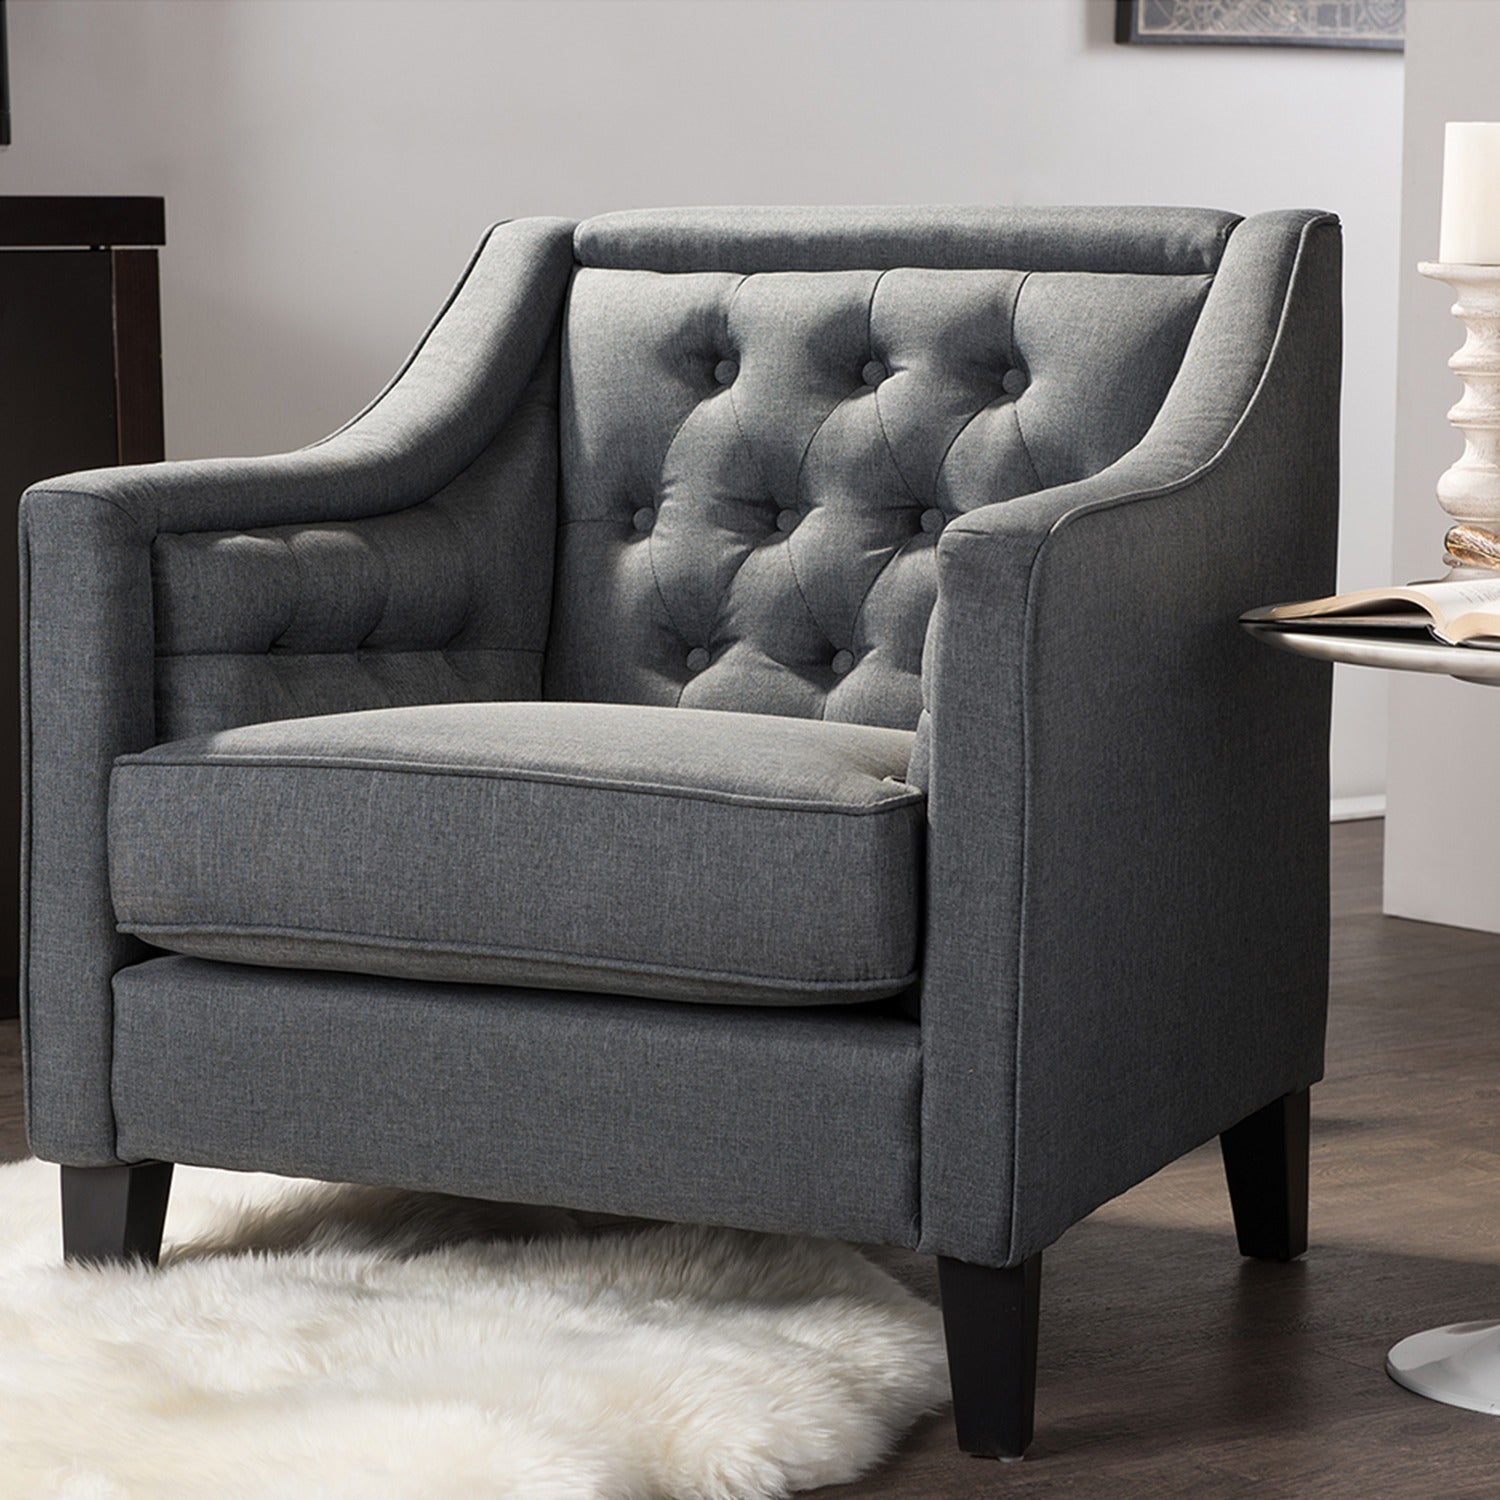 Shop Vienna Classic Retro Modern Contemporary Grey Fabric Upholstered  Button Tufted Armchair   Free Shipping Today   Overstock.com   10354655